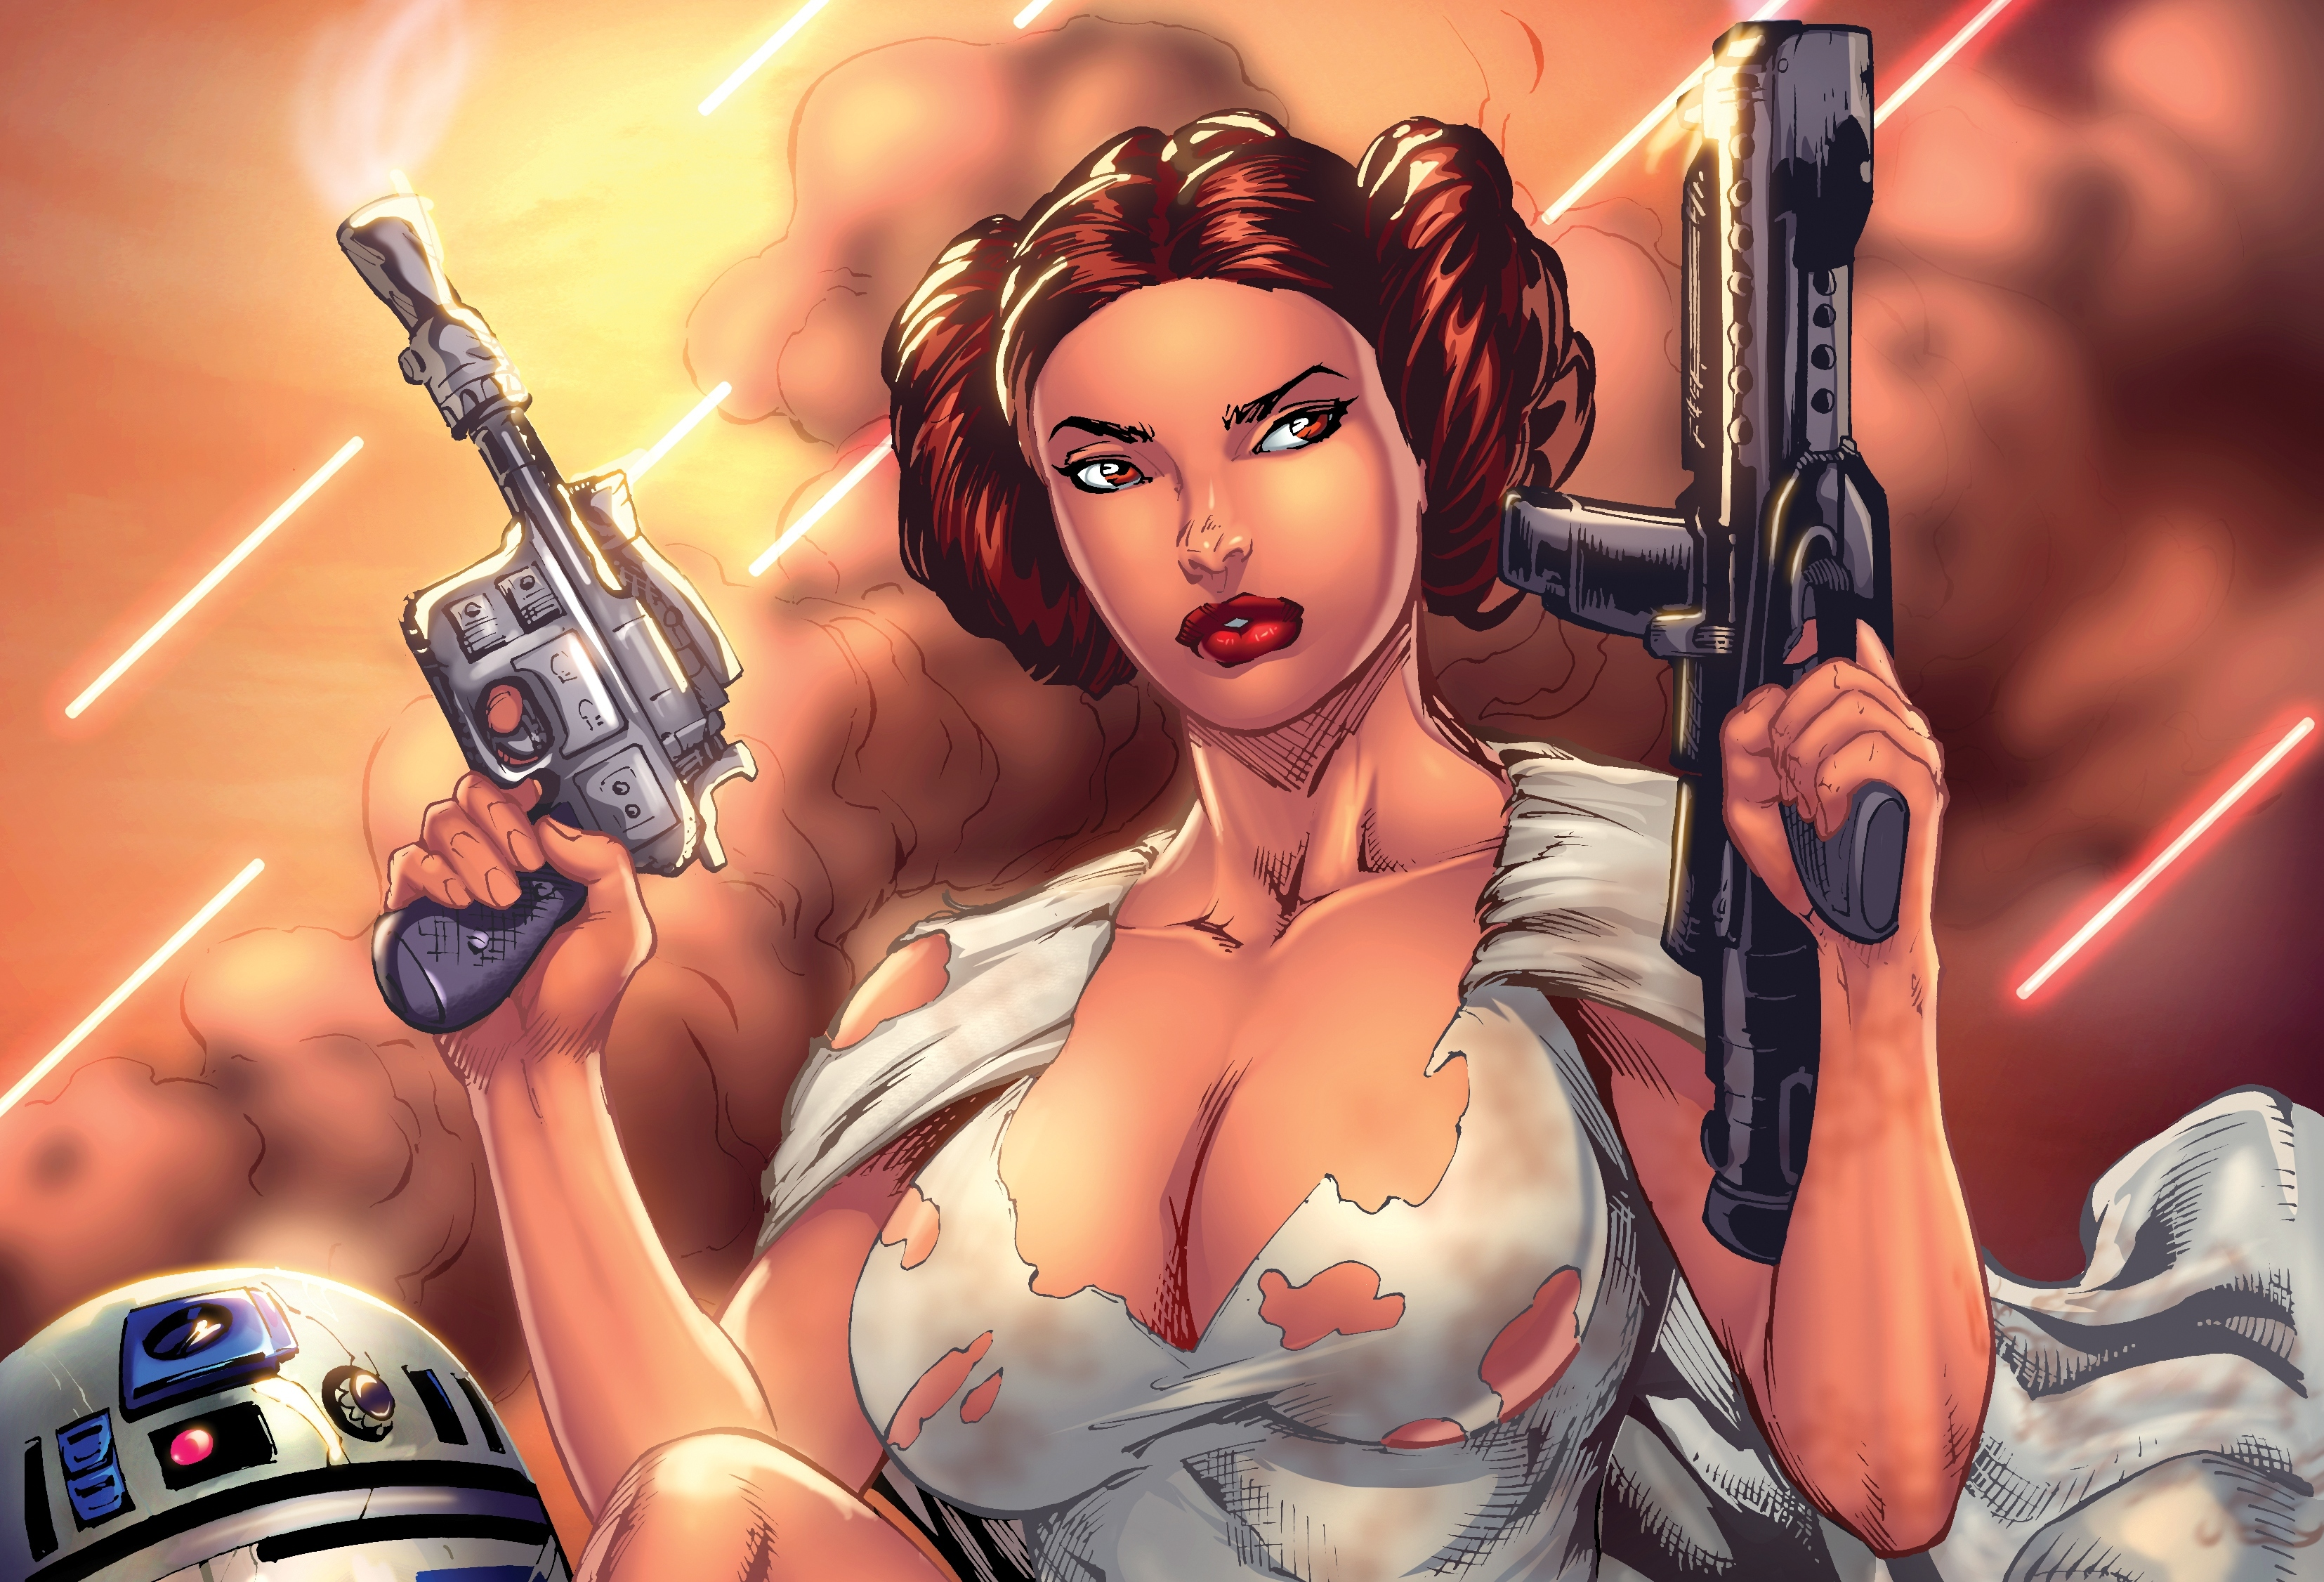 Leia star wars hentai 3gp download nackt movies